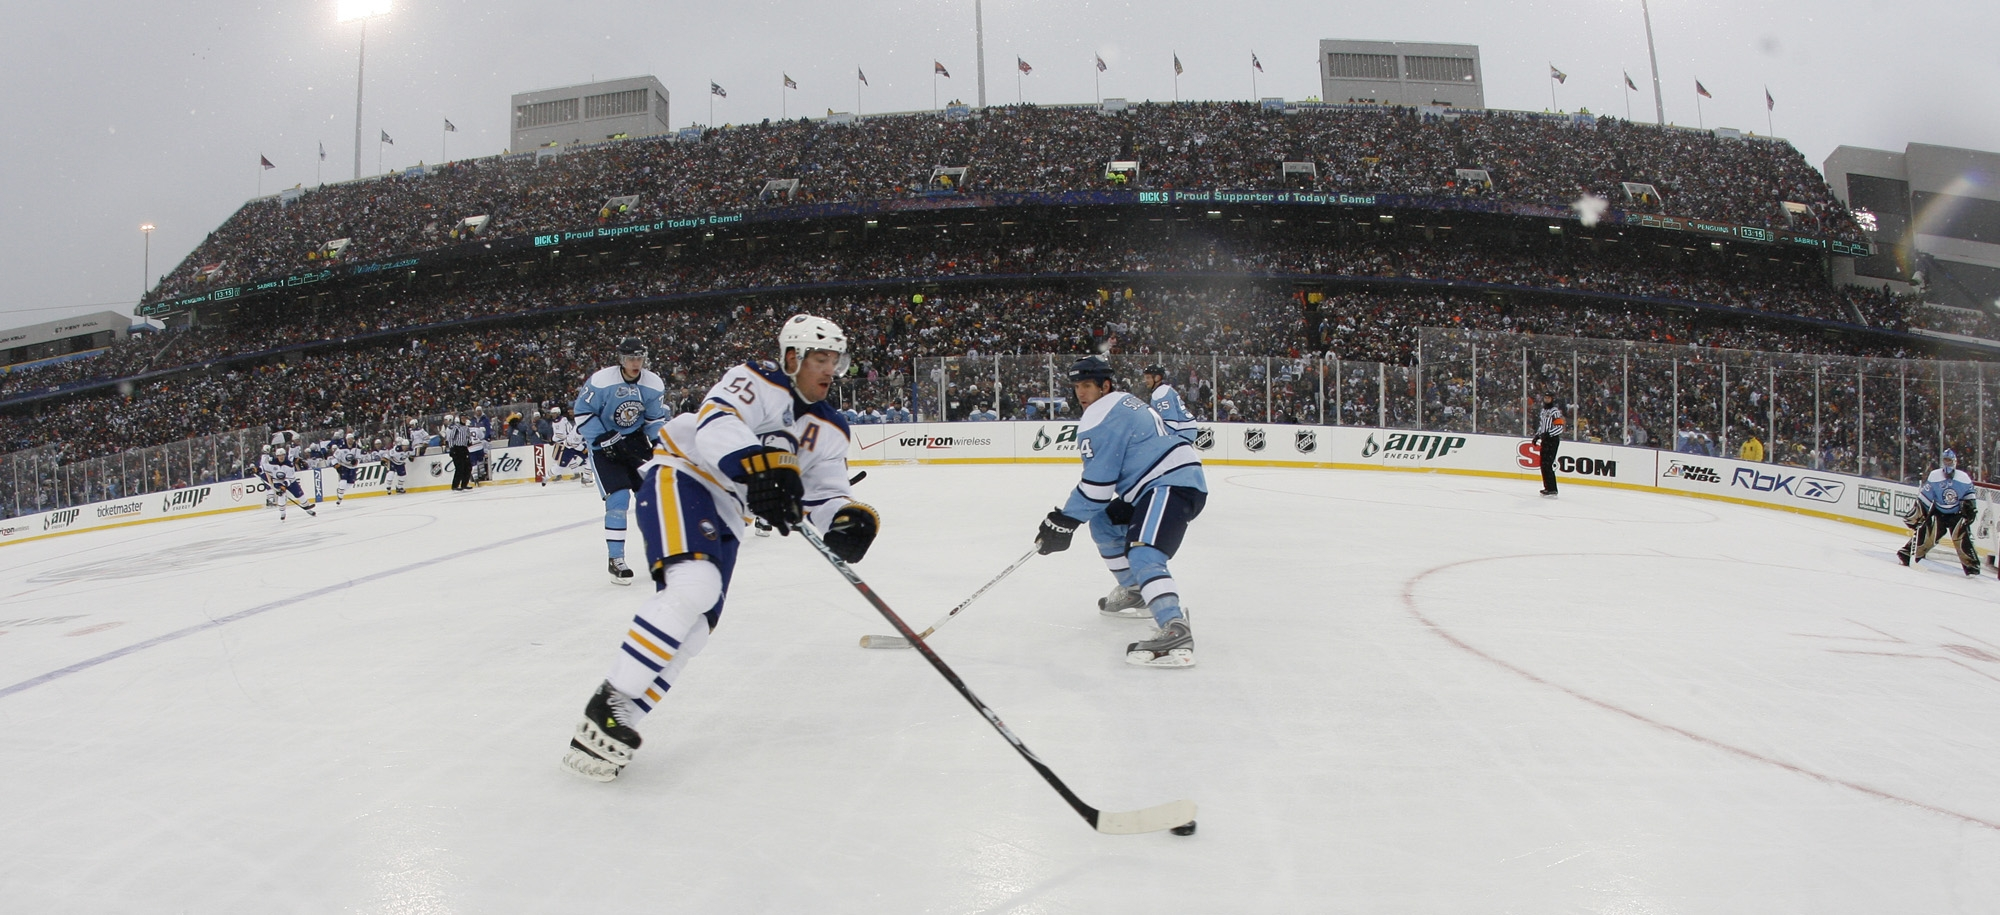 The Sabres and Jochen Hecht played the Penguins in the Bills' stadium Jan. 1, 2008. (Harry Scull Jr./Buffalo News file photo)